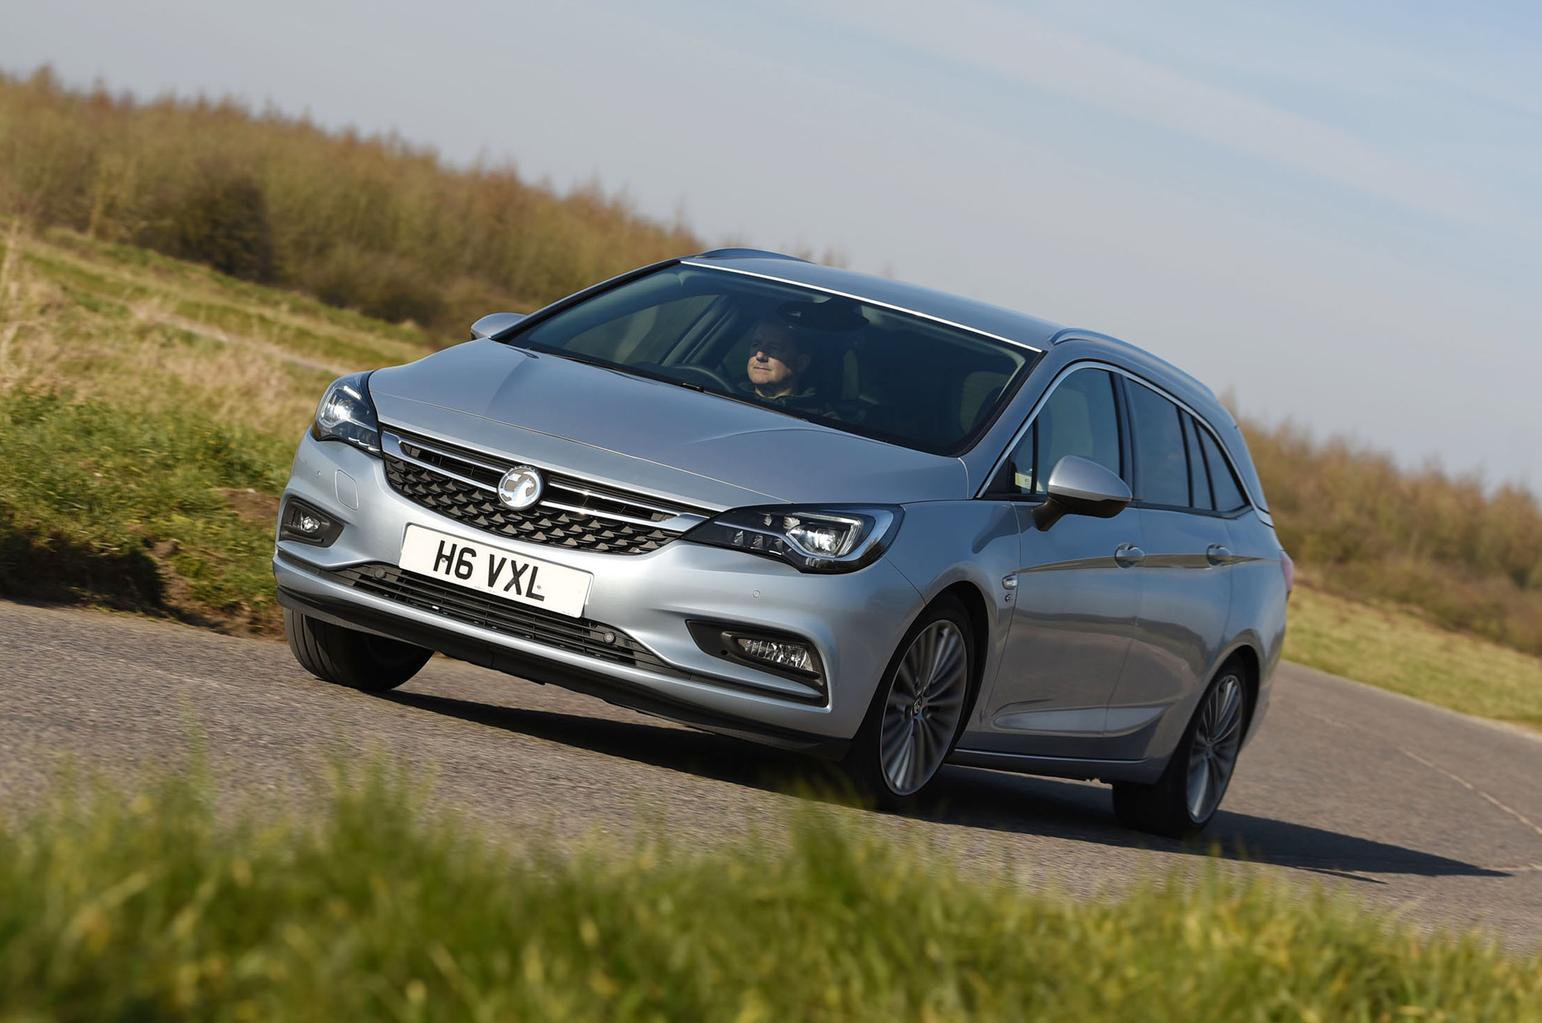 Skoda Octavia Estate vs Vauxhall Astra Sports Tourer